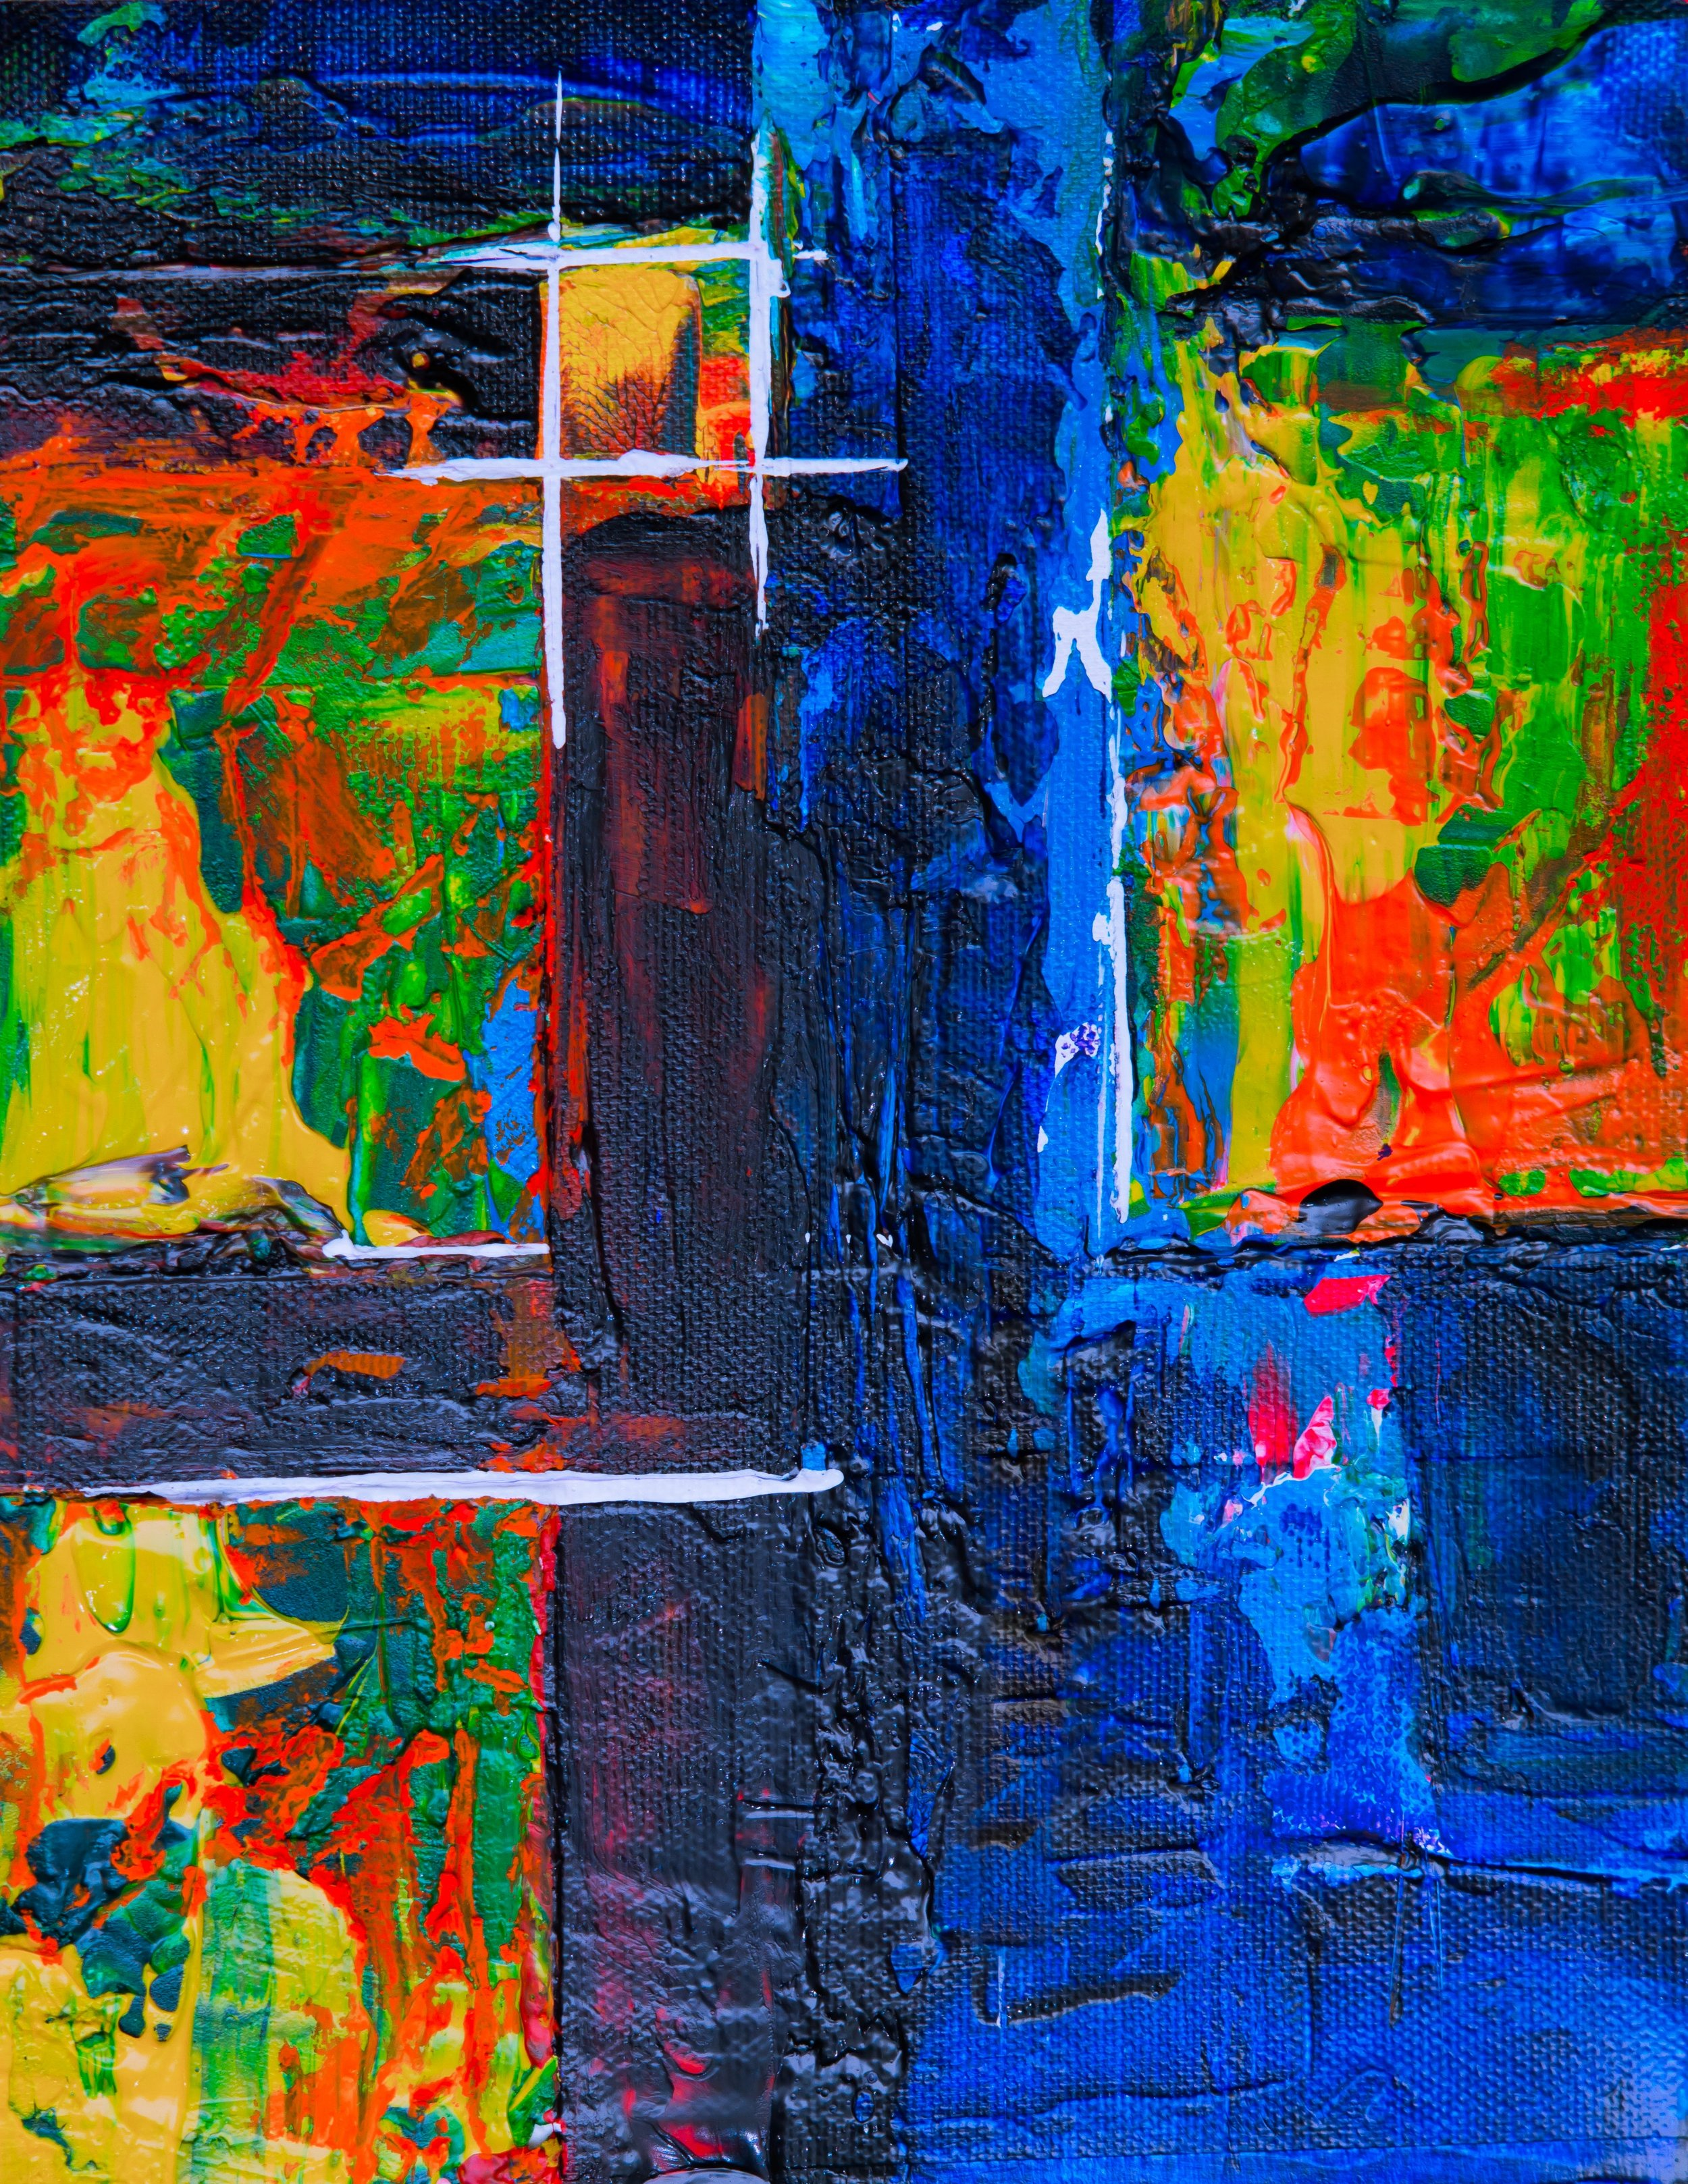 abstract-abstract-painting-acrylic-1581421.jpg